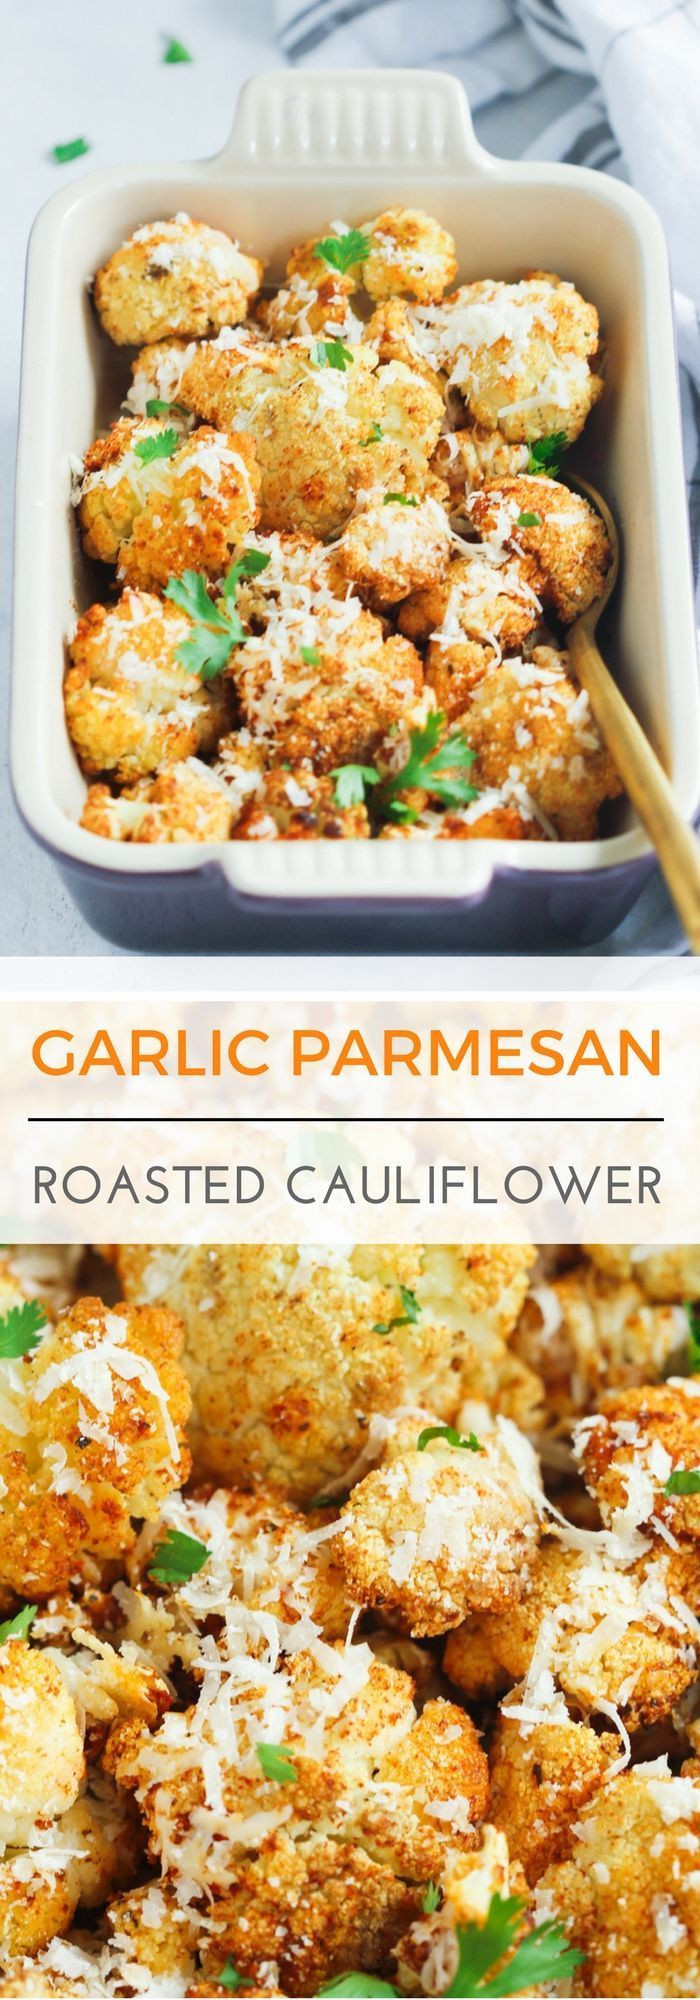 Low Carb Vegetable Side Dishes  Best 25 Low carb side dishes ideas on Pinterest